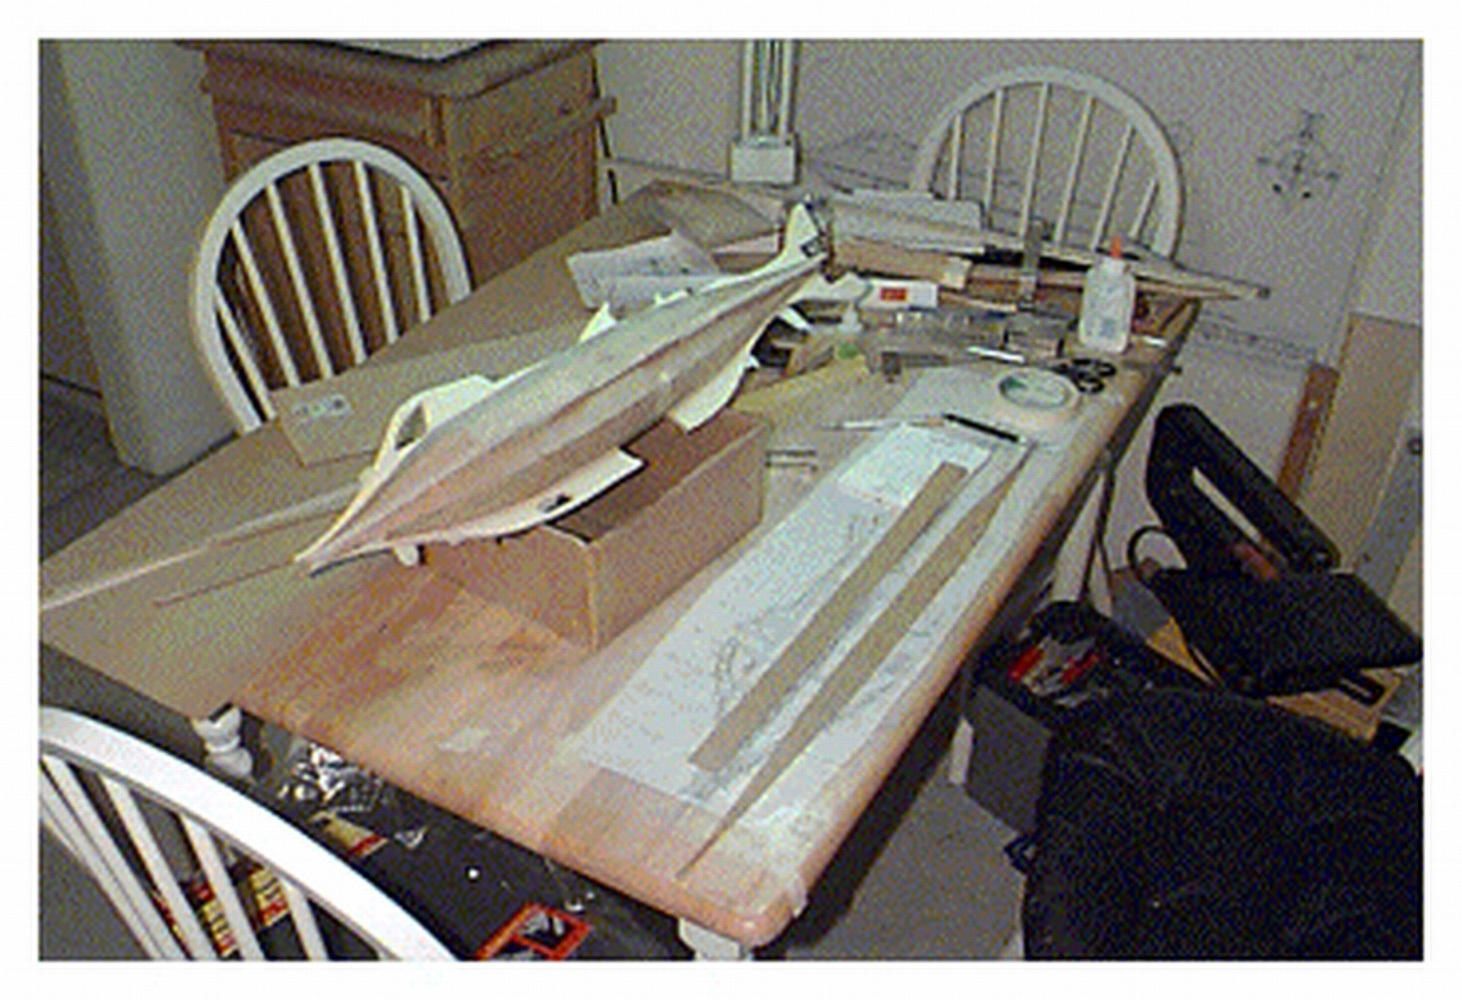 The planked hull sitting in the temporary cradle